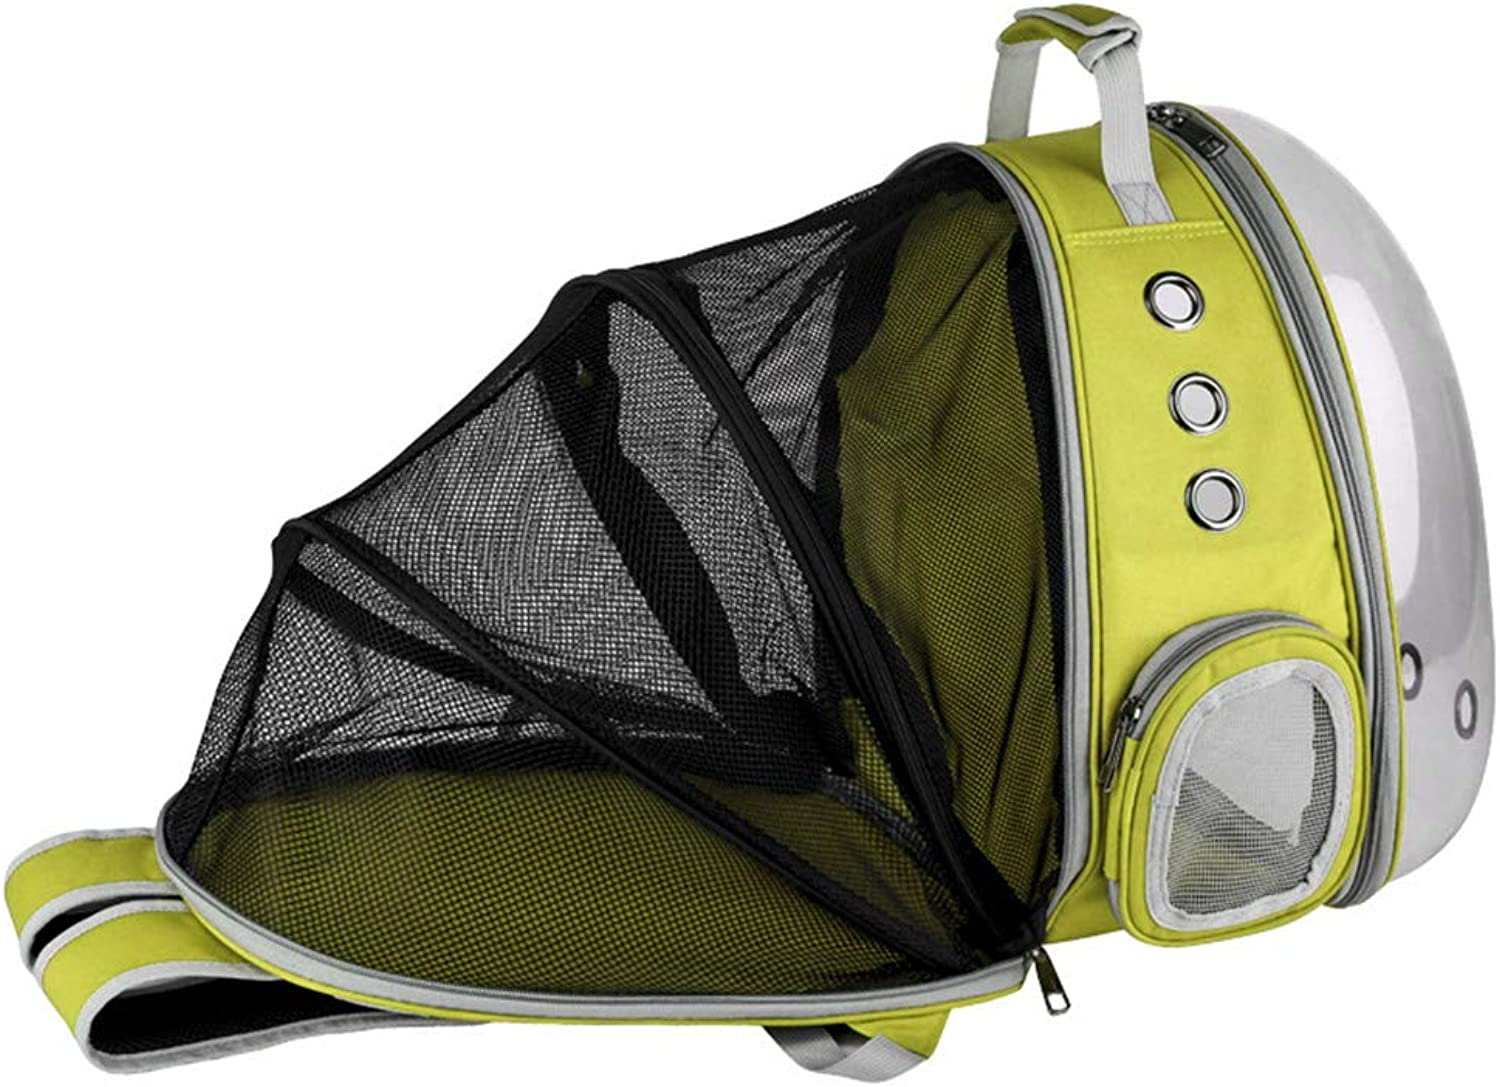 Outdoor Pet Breathable Space Capsule Backpack Side Zipper Opening Portable Transparent Cat Dog Cage Puppy Travel Carrier Bag(Yellow)